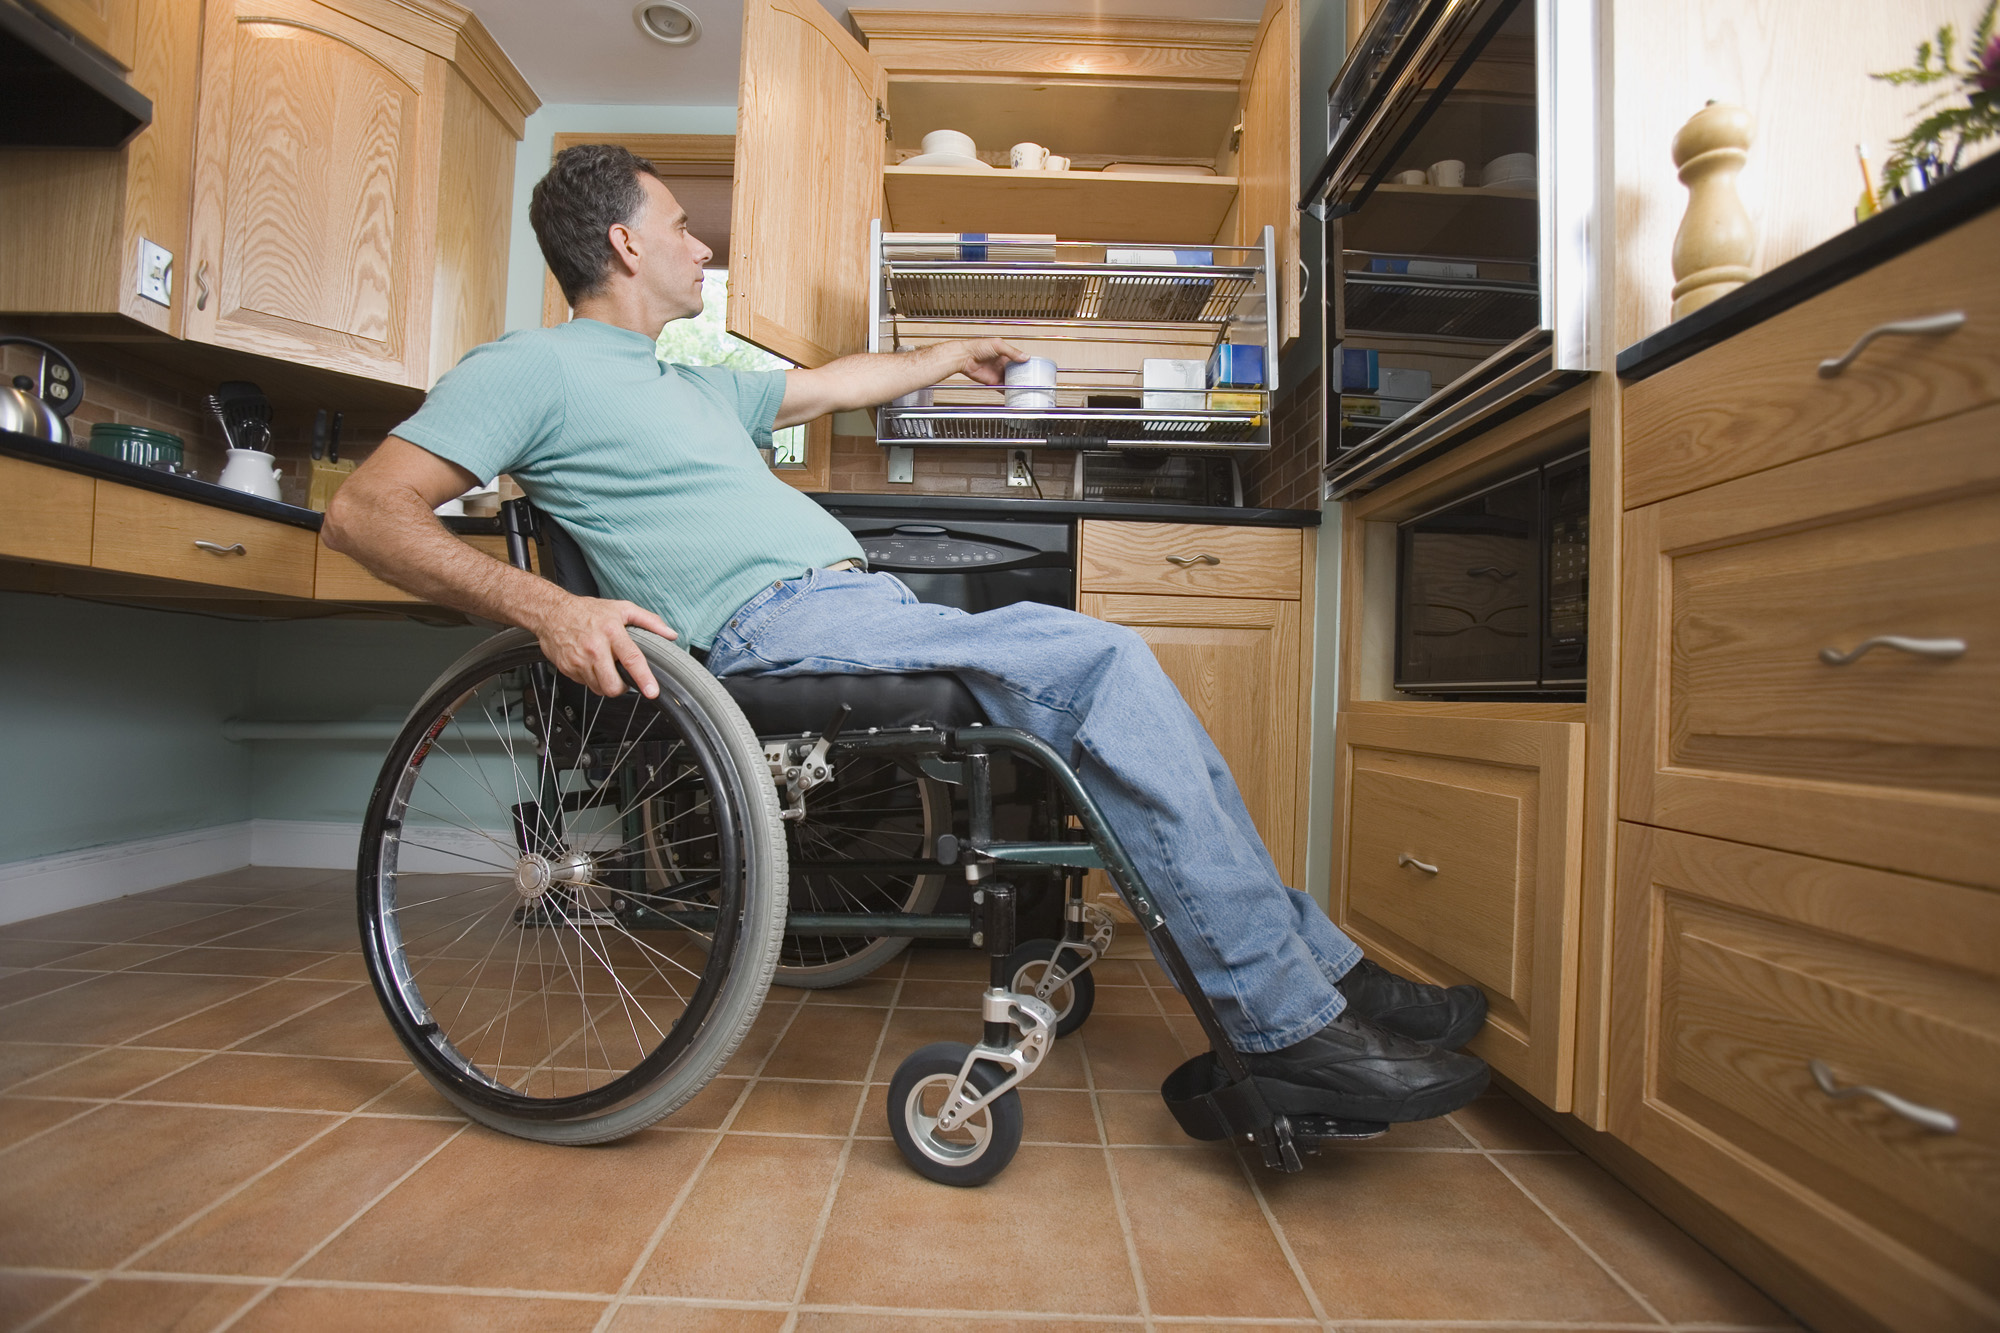 Man in wheelchair working in his kitchen